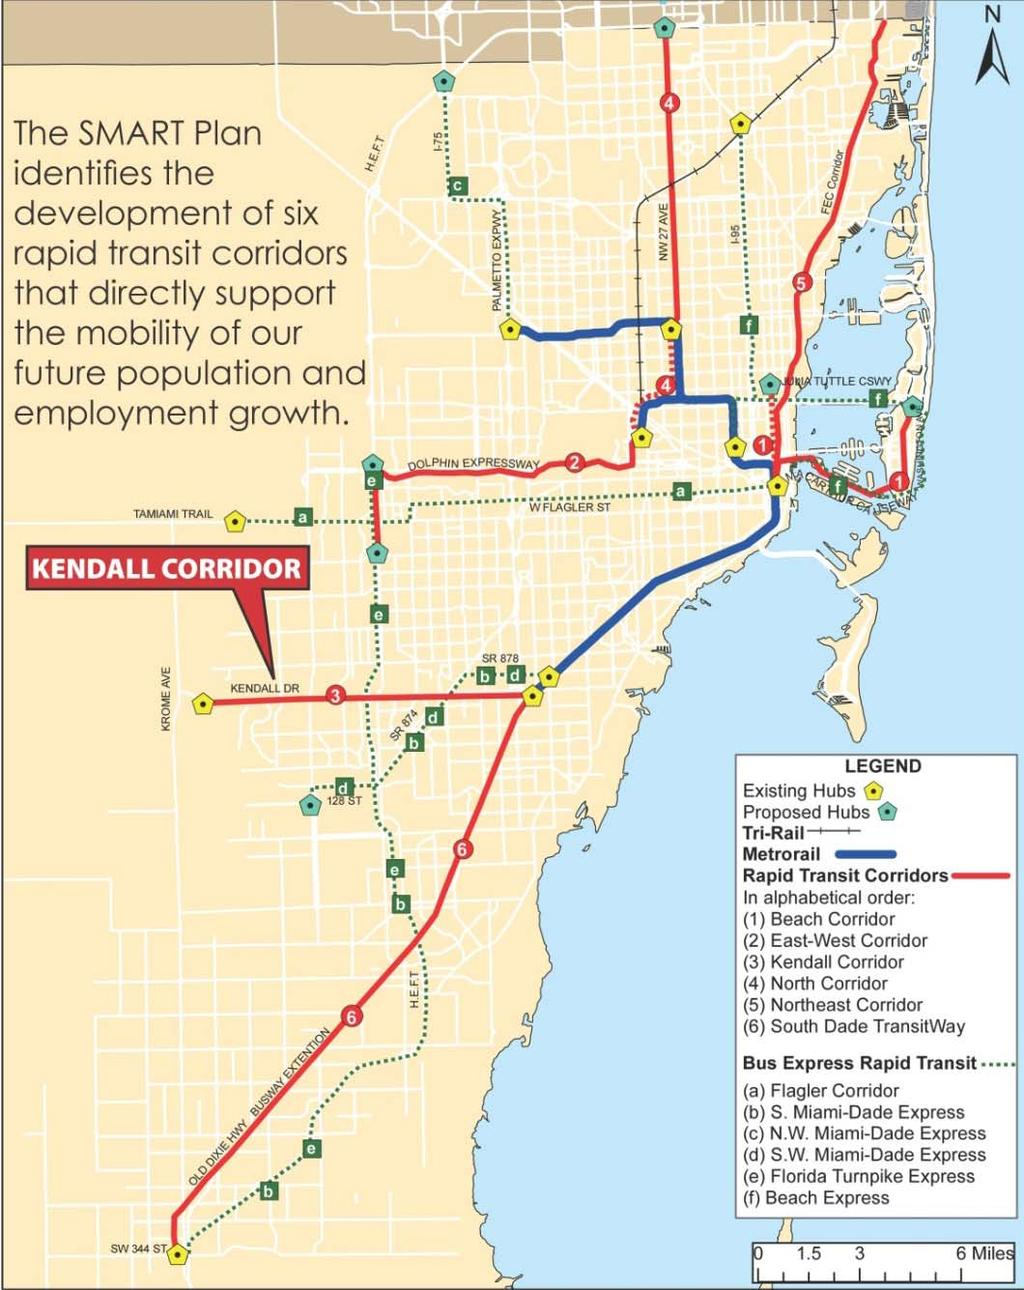 Miami-Dade MPO SMART Plan Six identified Rapid Transit Corridors: Beach Corridor